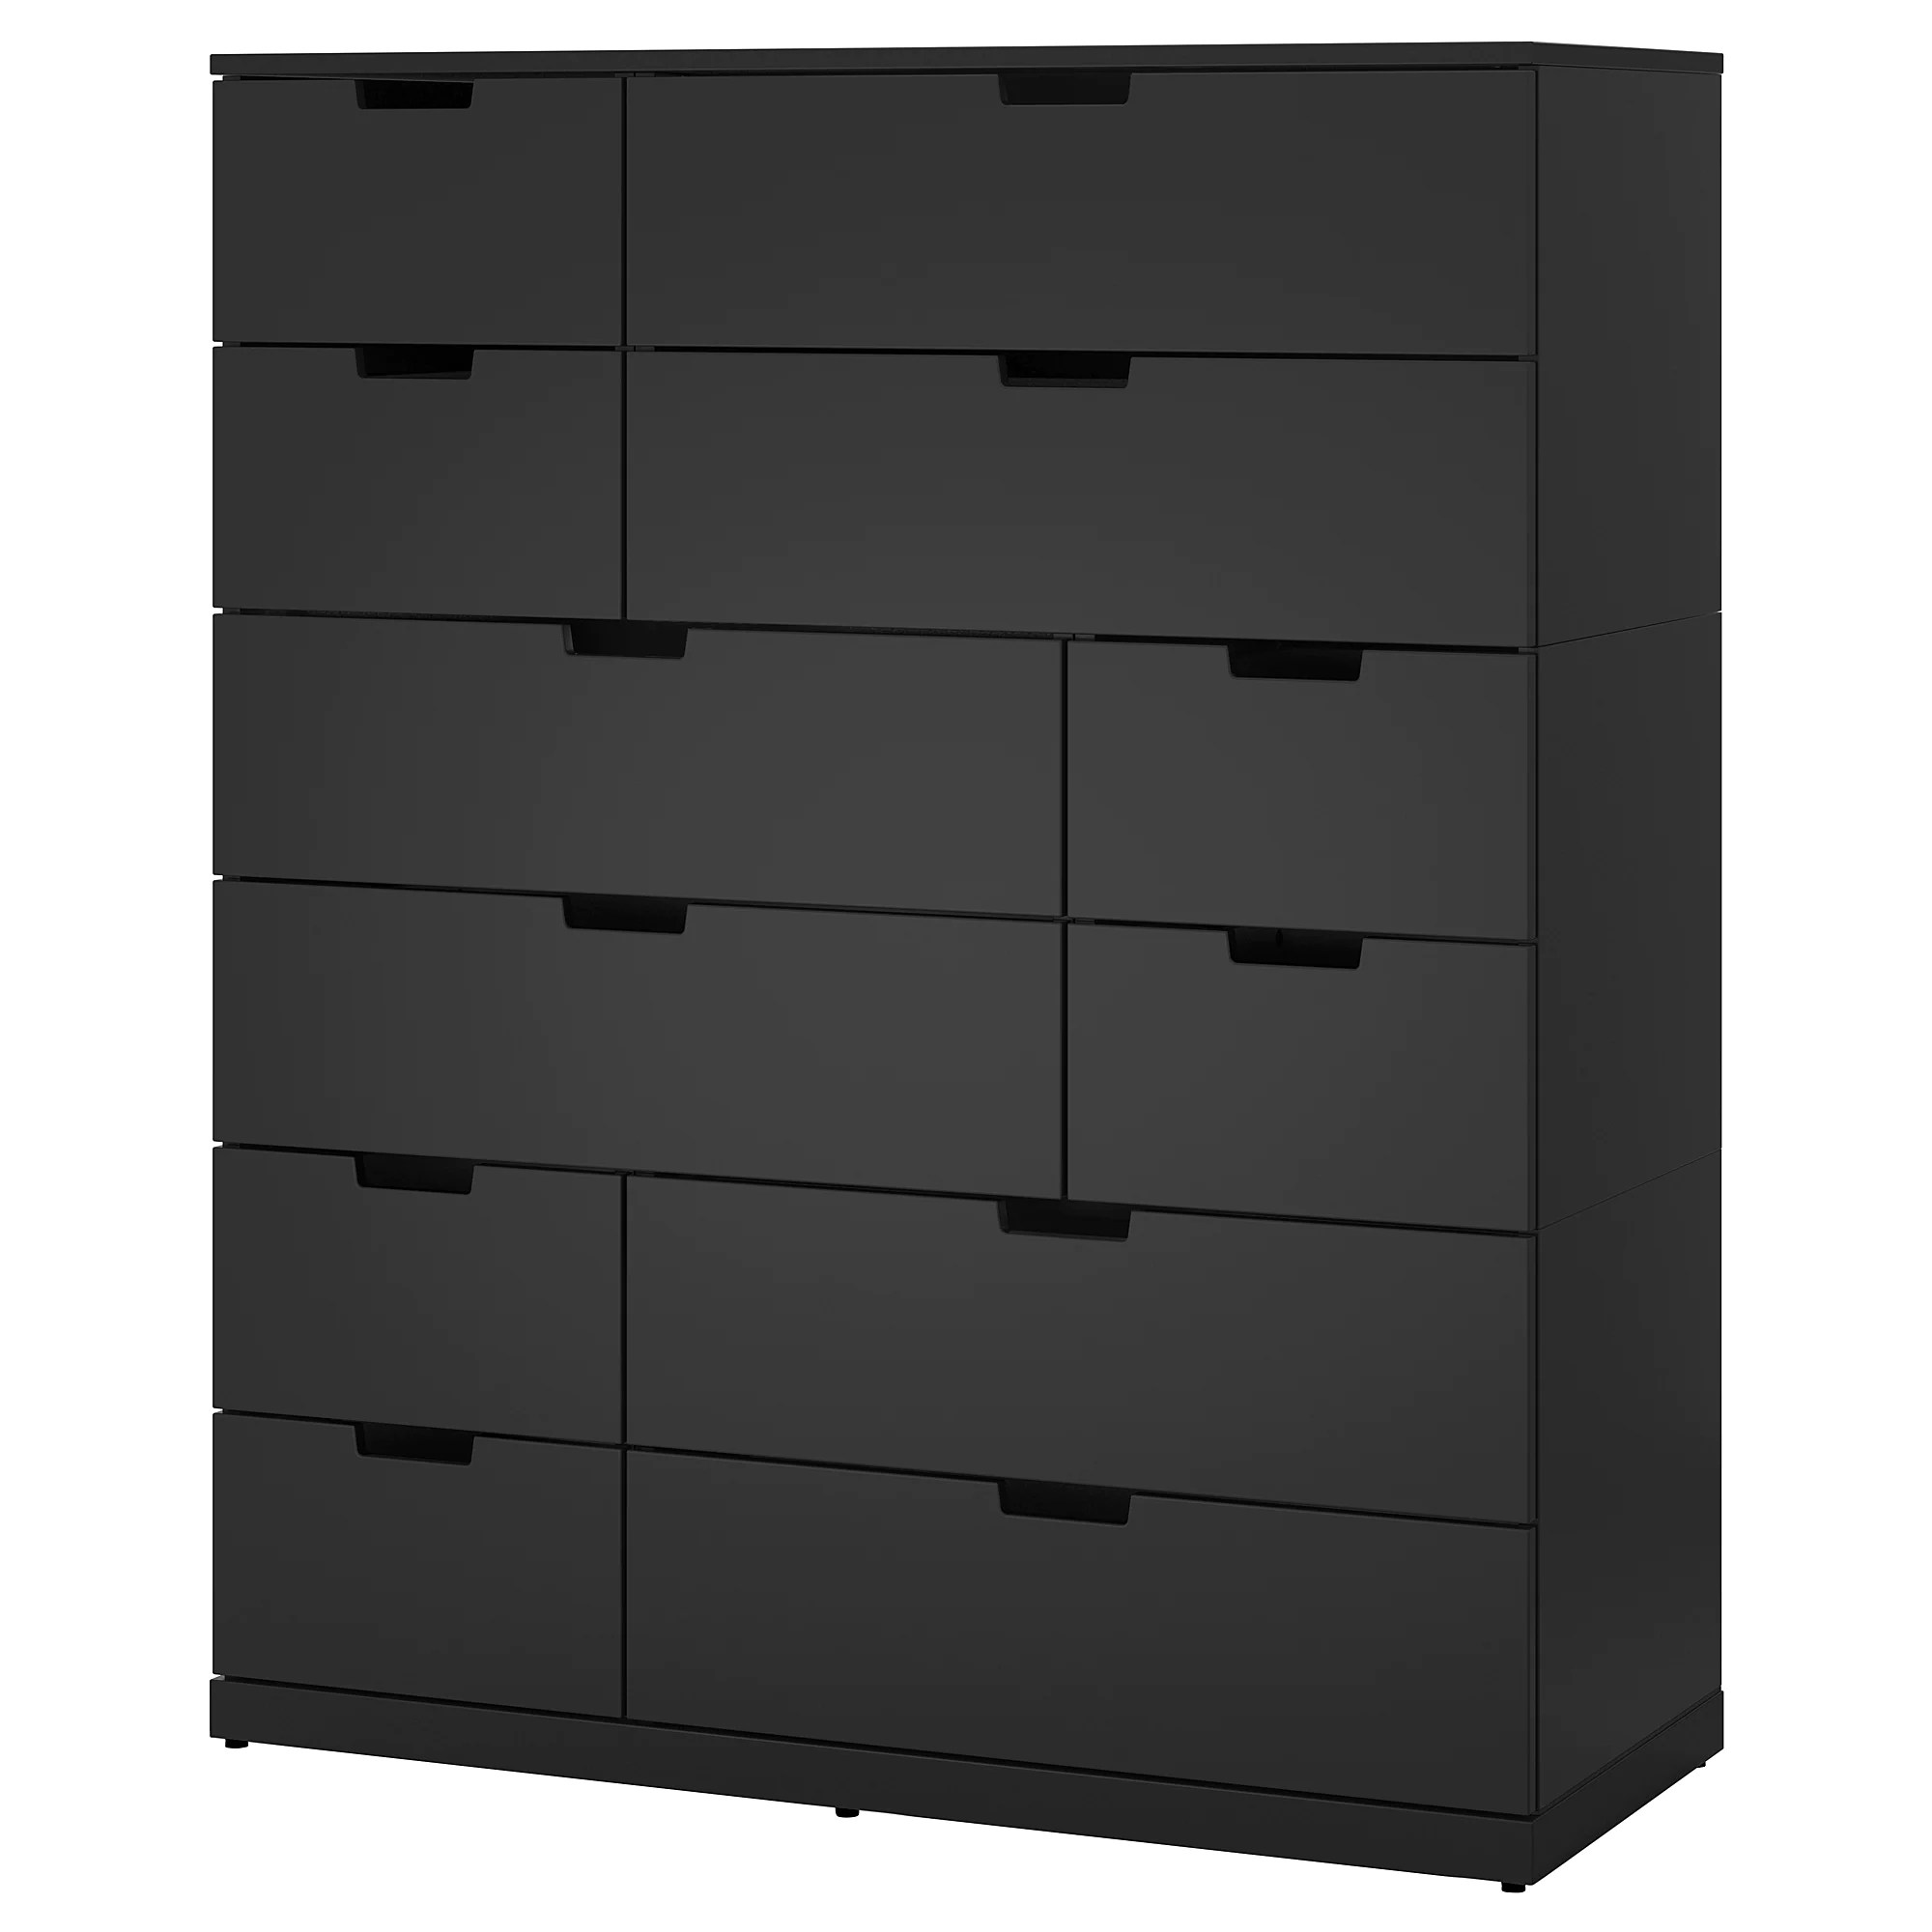 12 Drawer Chest Of Drawers Nordli 12 Drawer Chest Anthracite